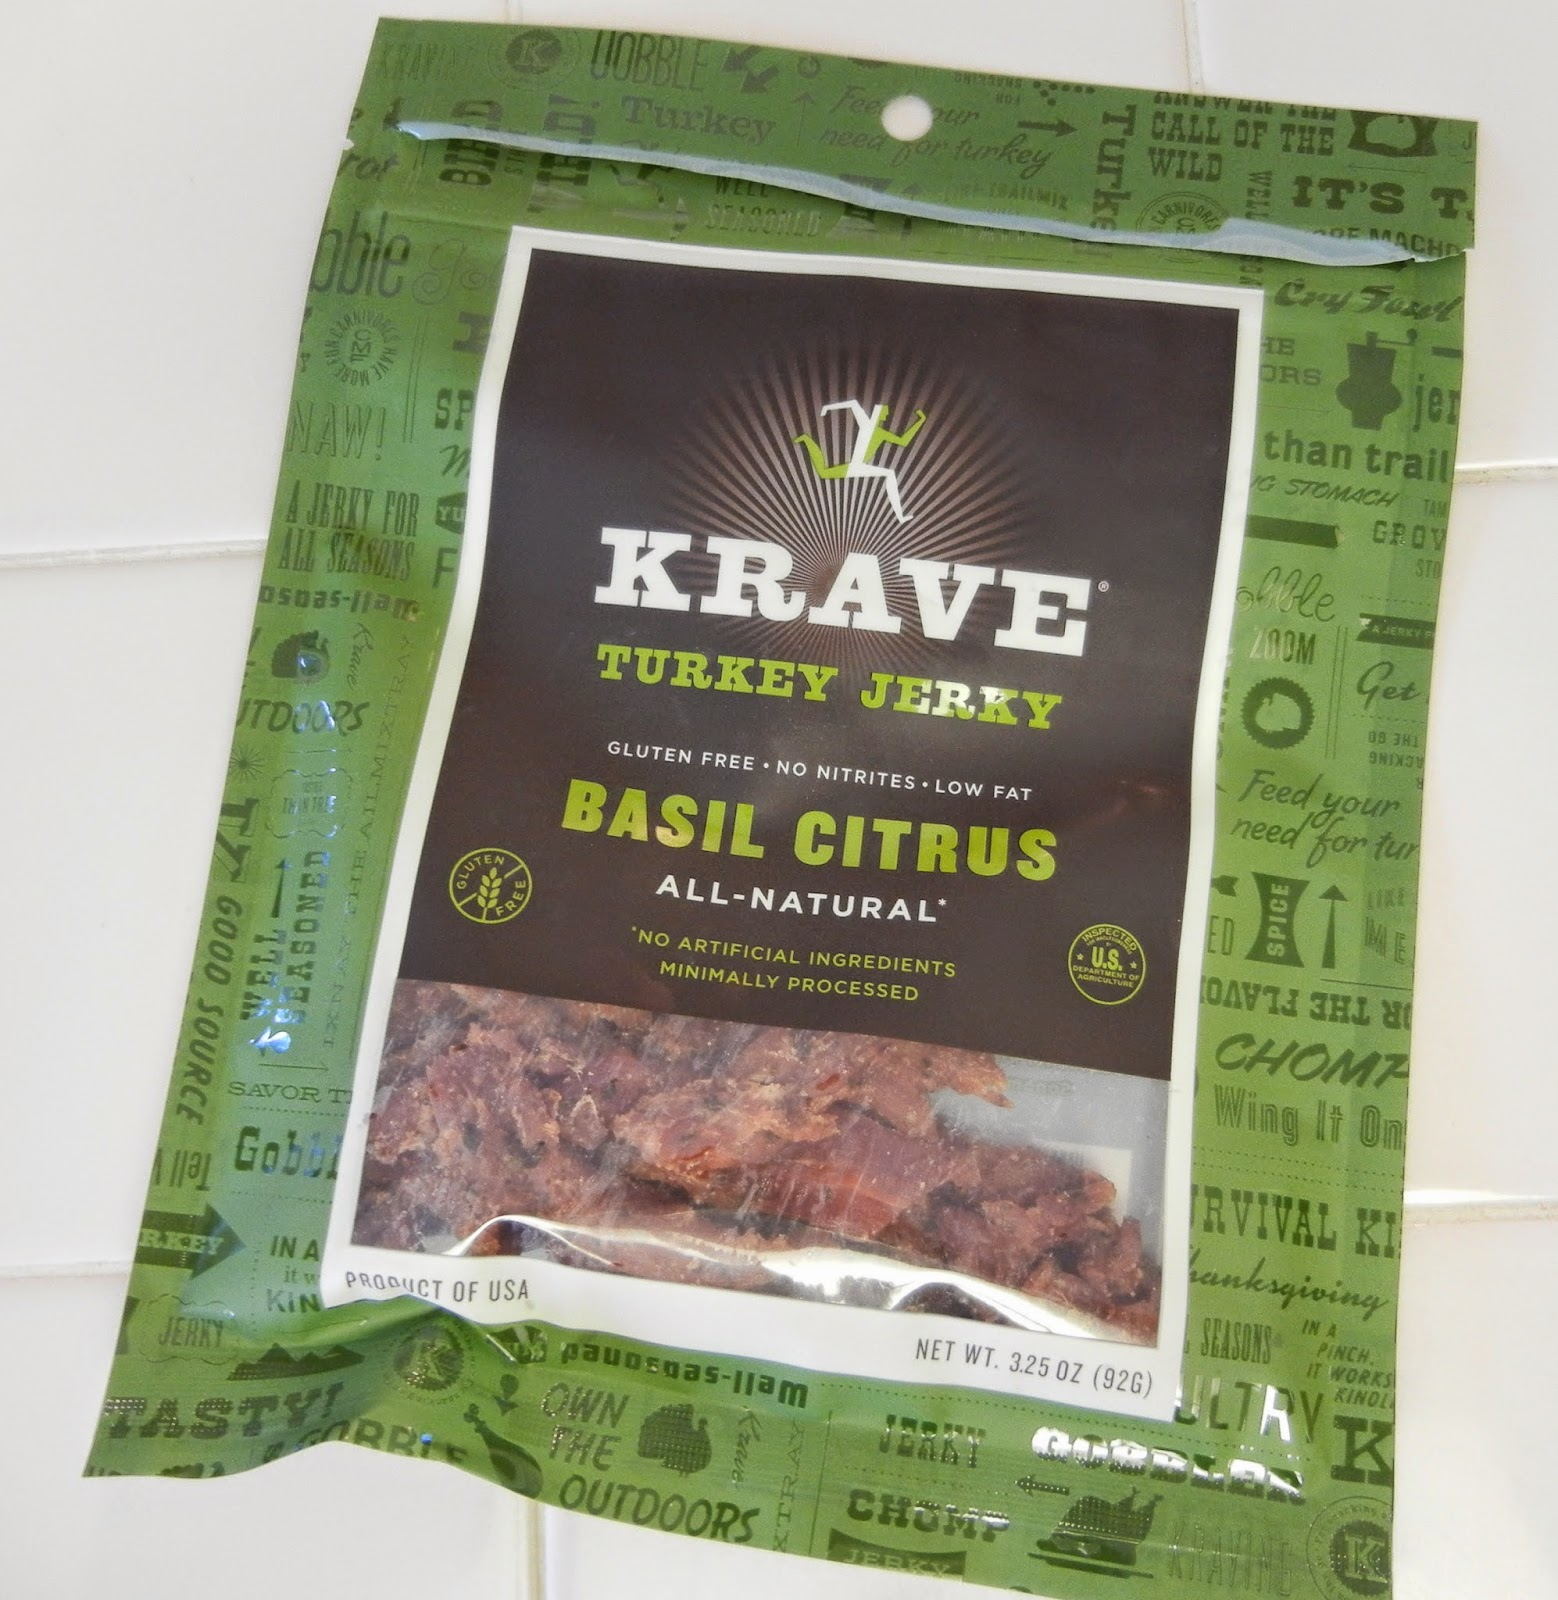 Krave%2BTurkey%2BJerky%2BBasil%2BCitrus Weight Loss Recipes Post Weight Loss Surgery Menus: A day in my pouch